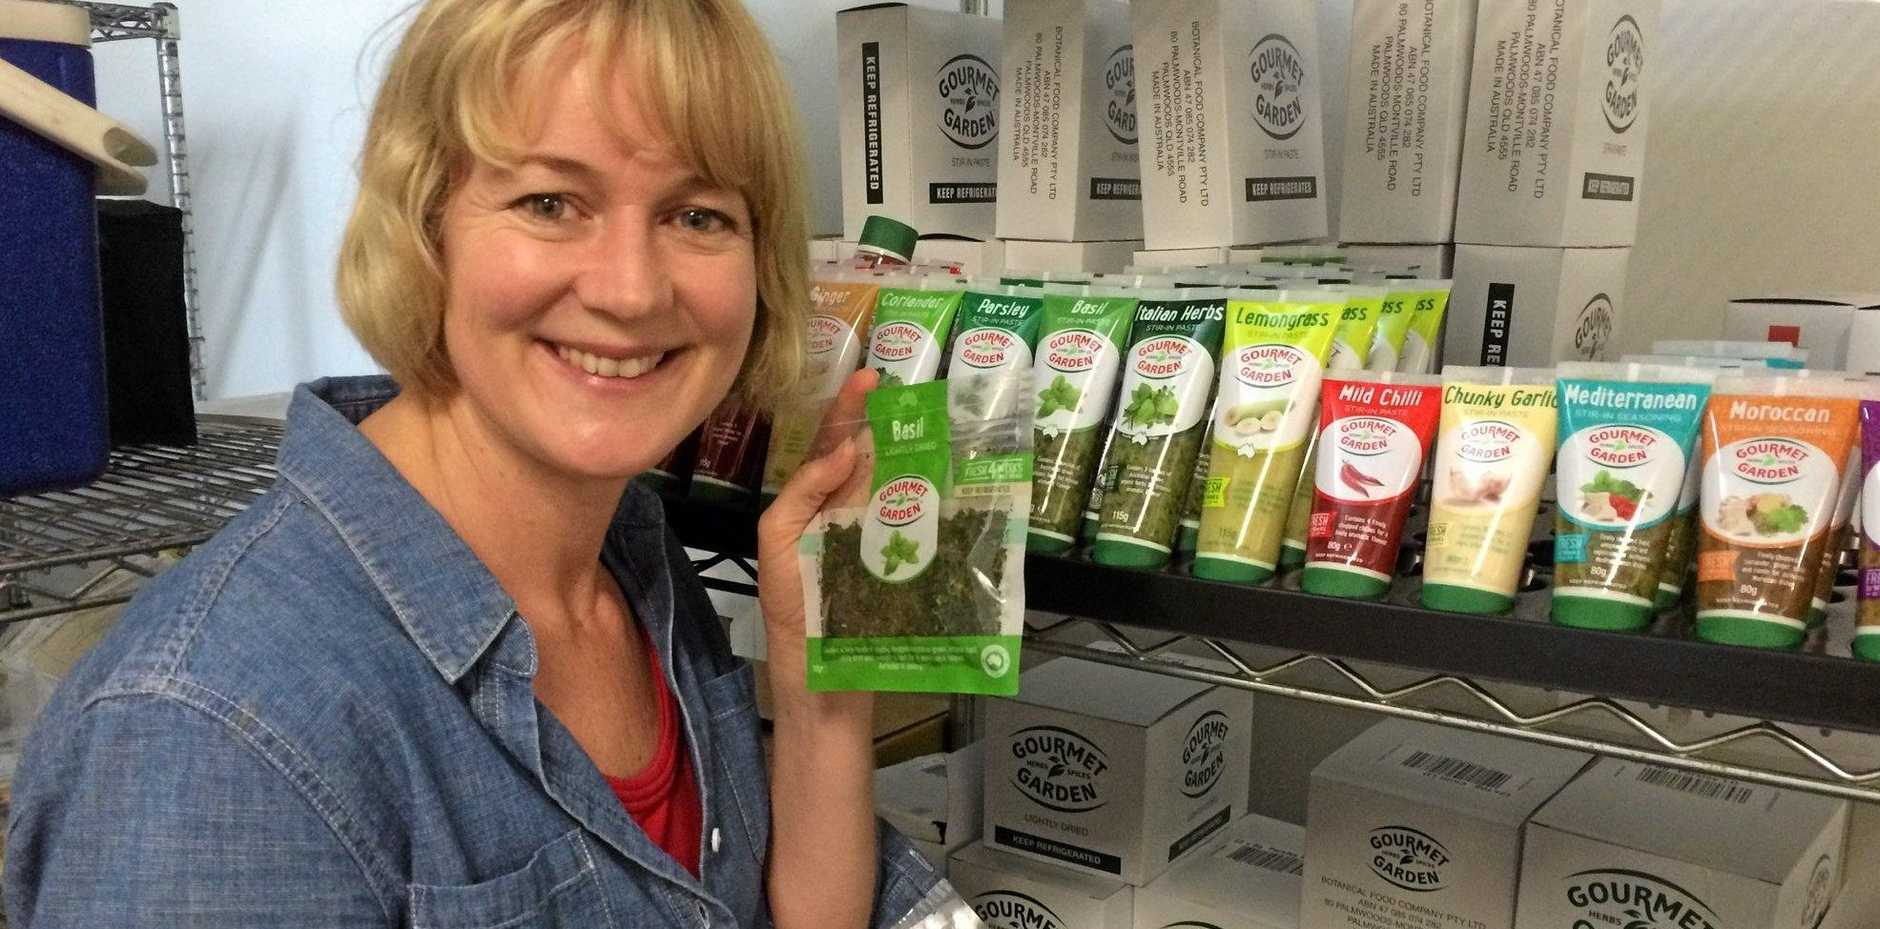 NEW ERA: Jacqui Wilson-Smith, of Gourmet Garden, with some of the locally produced herb products.